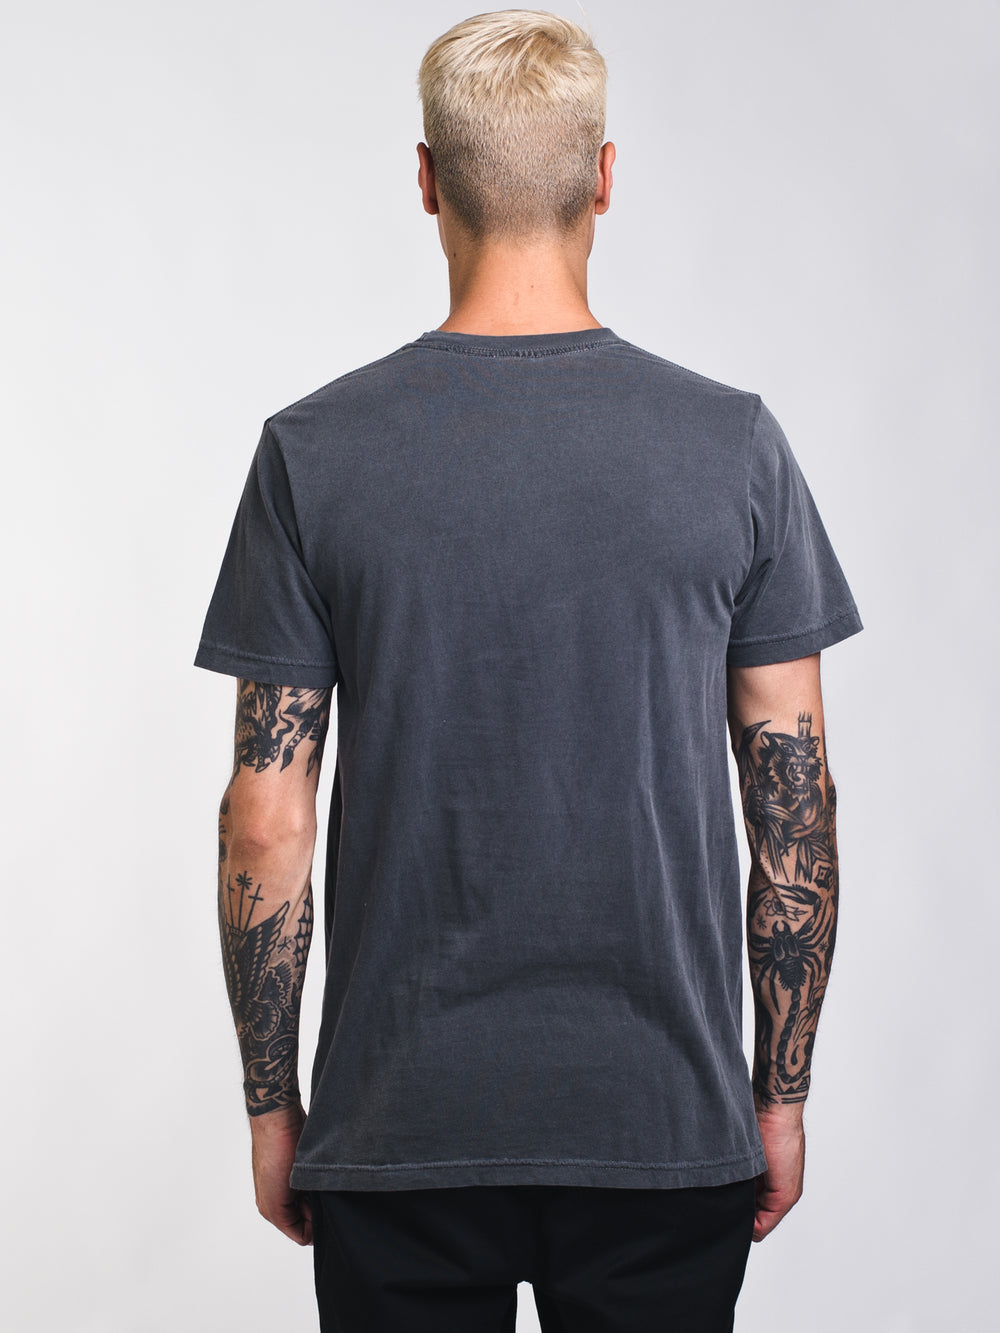 MENS LORD NERMAL S/S PCKT T